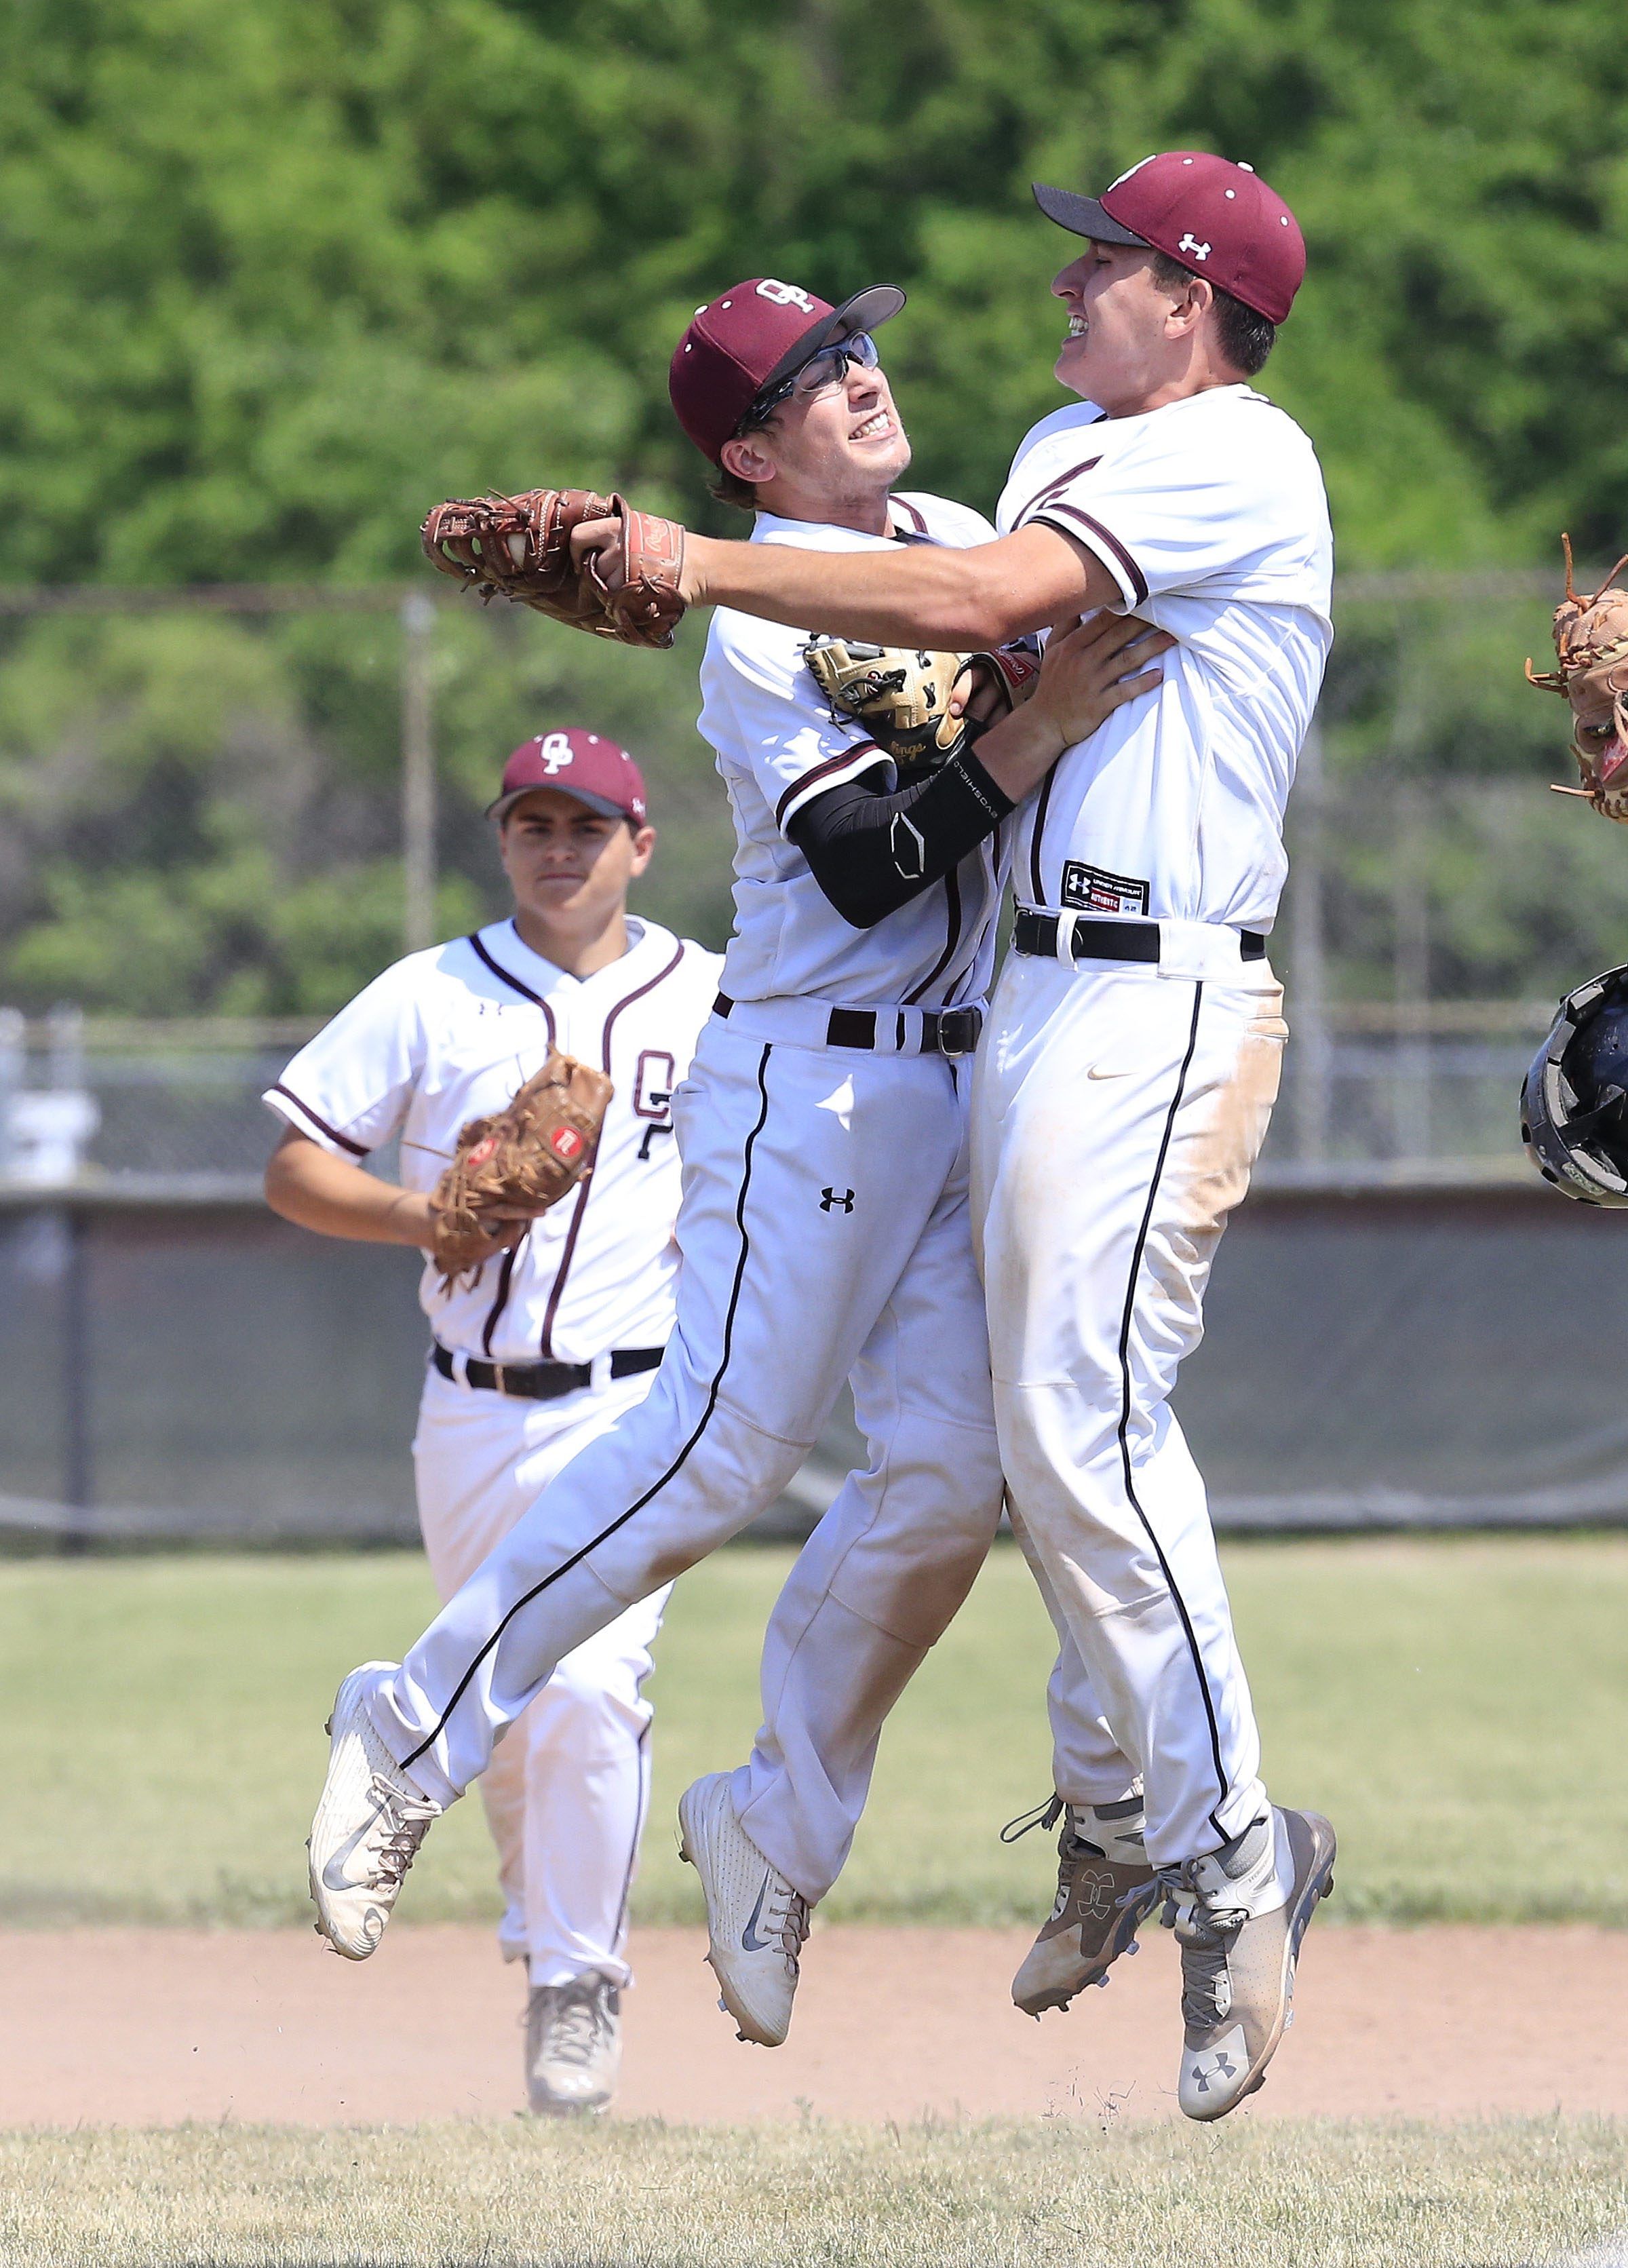 Orchard Park's Brandon Nicholson and Andrew Sipowicz celebrate winning the Section VI Class AA title against Niagara Falls.